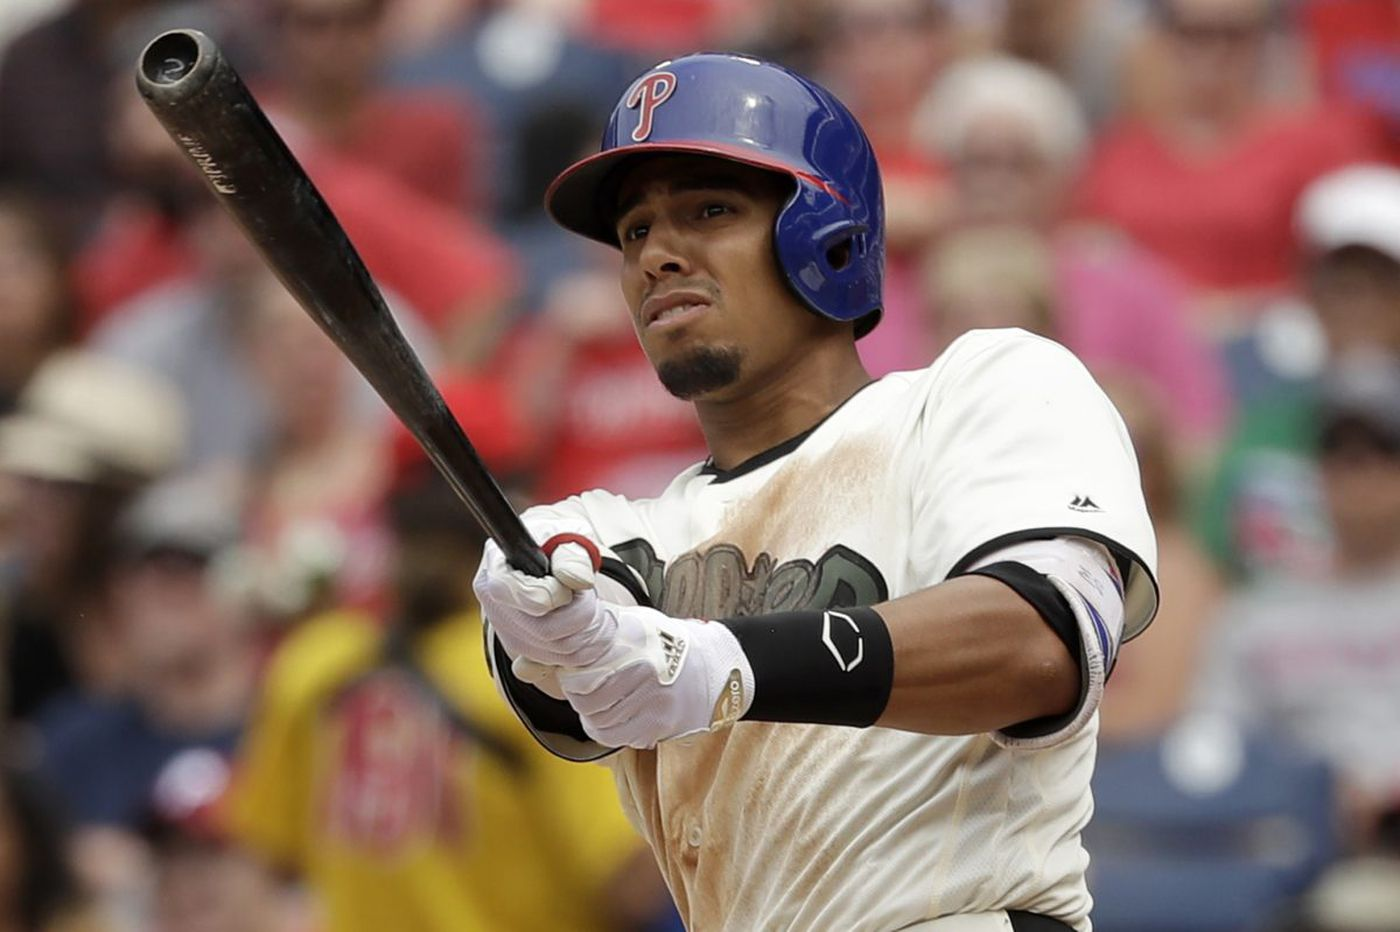 Phillies outfielder Aaron Altherr will be sidelined longer than expected